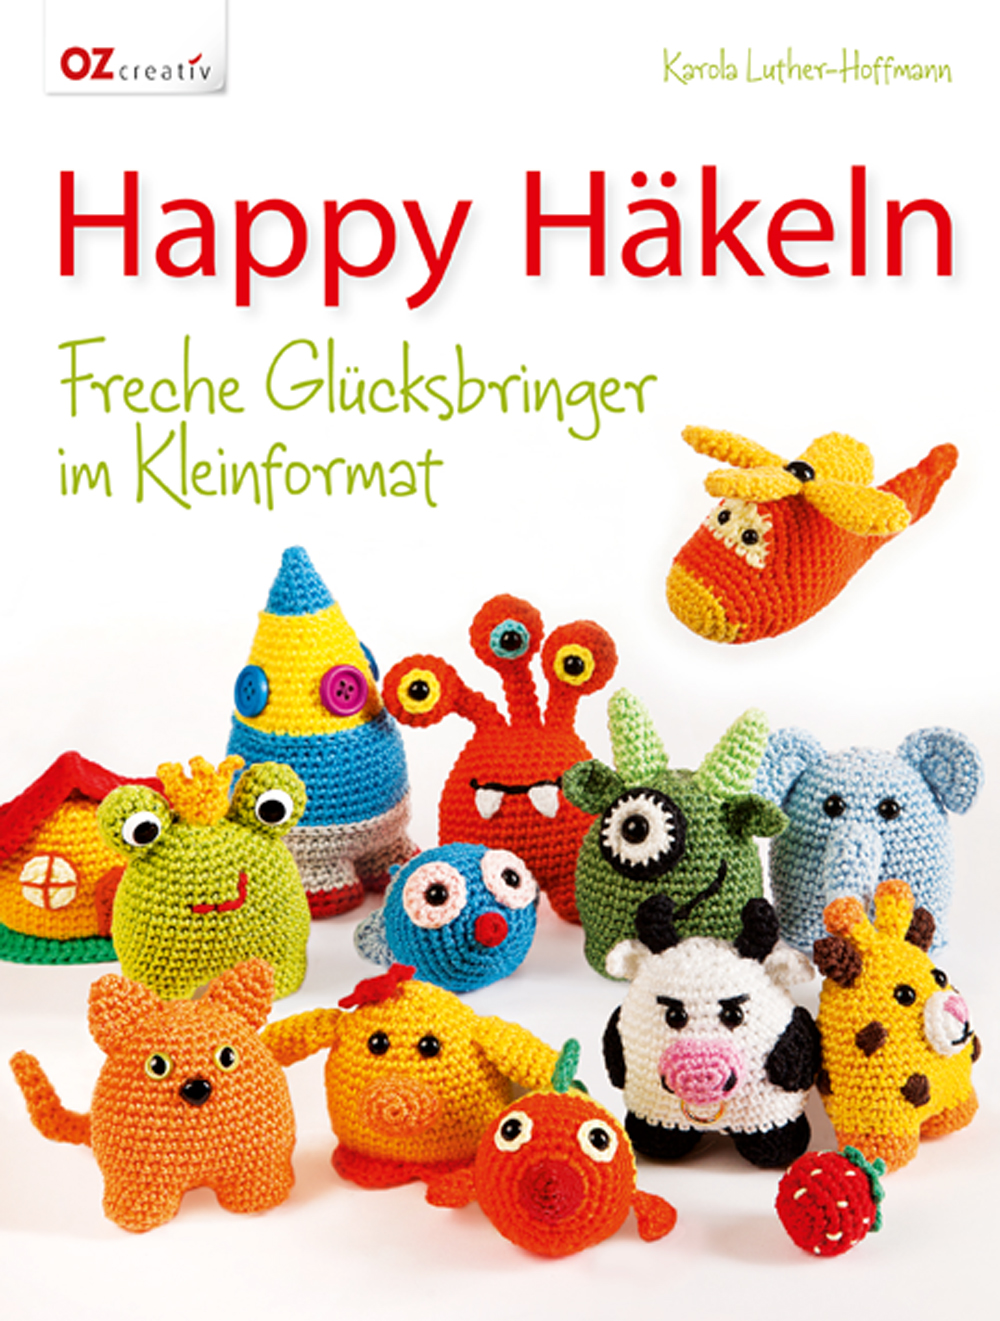 OZ creativ 6314 Happy Häkeln